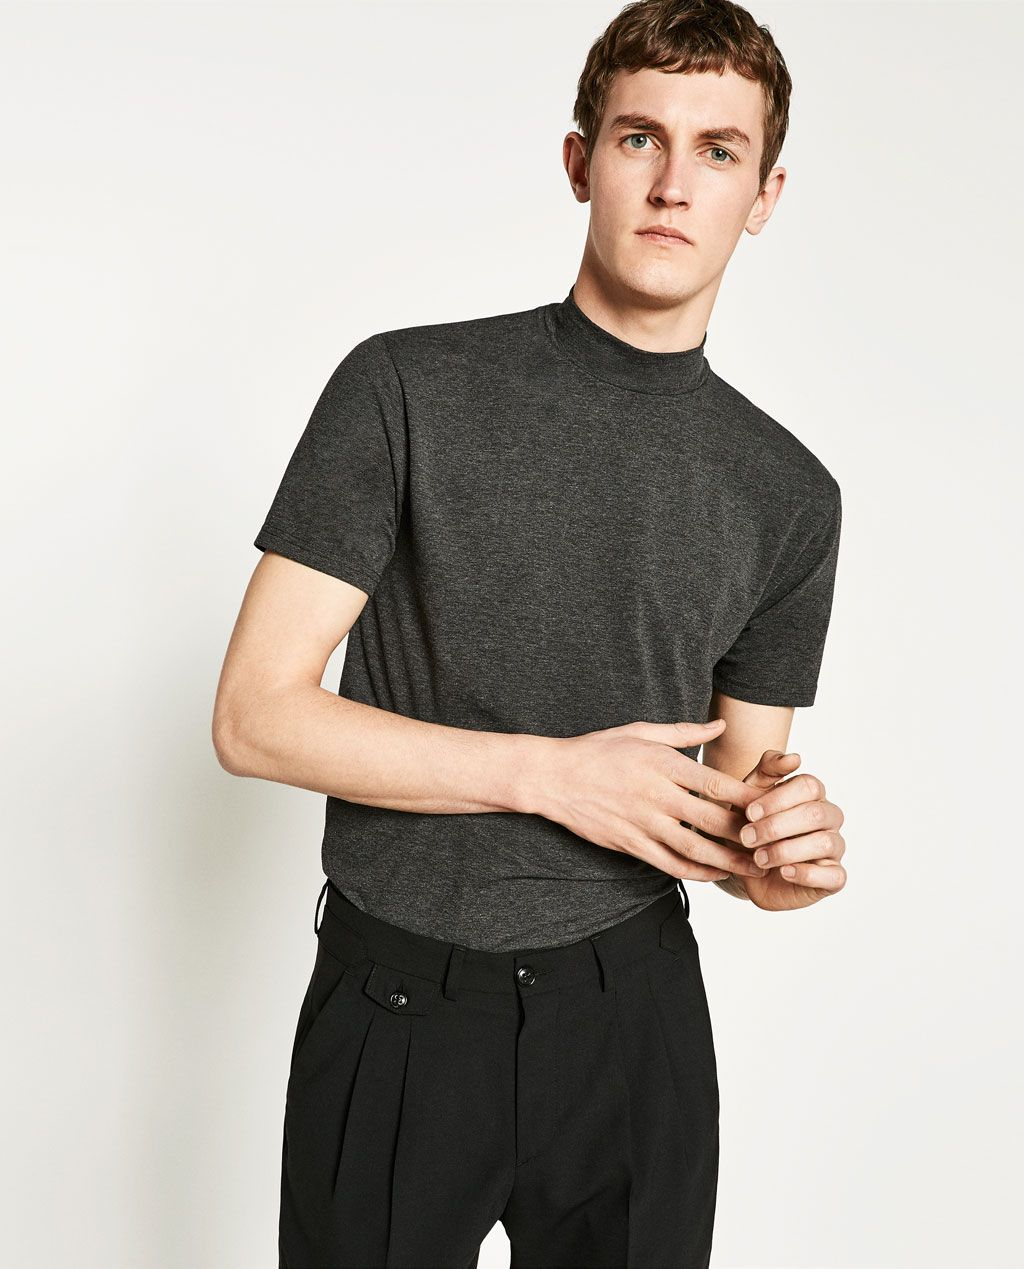 a3bef6a8fa9ca SHORT SLEEVE T-SHIRT WITH HIGH NECK from Zara